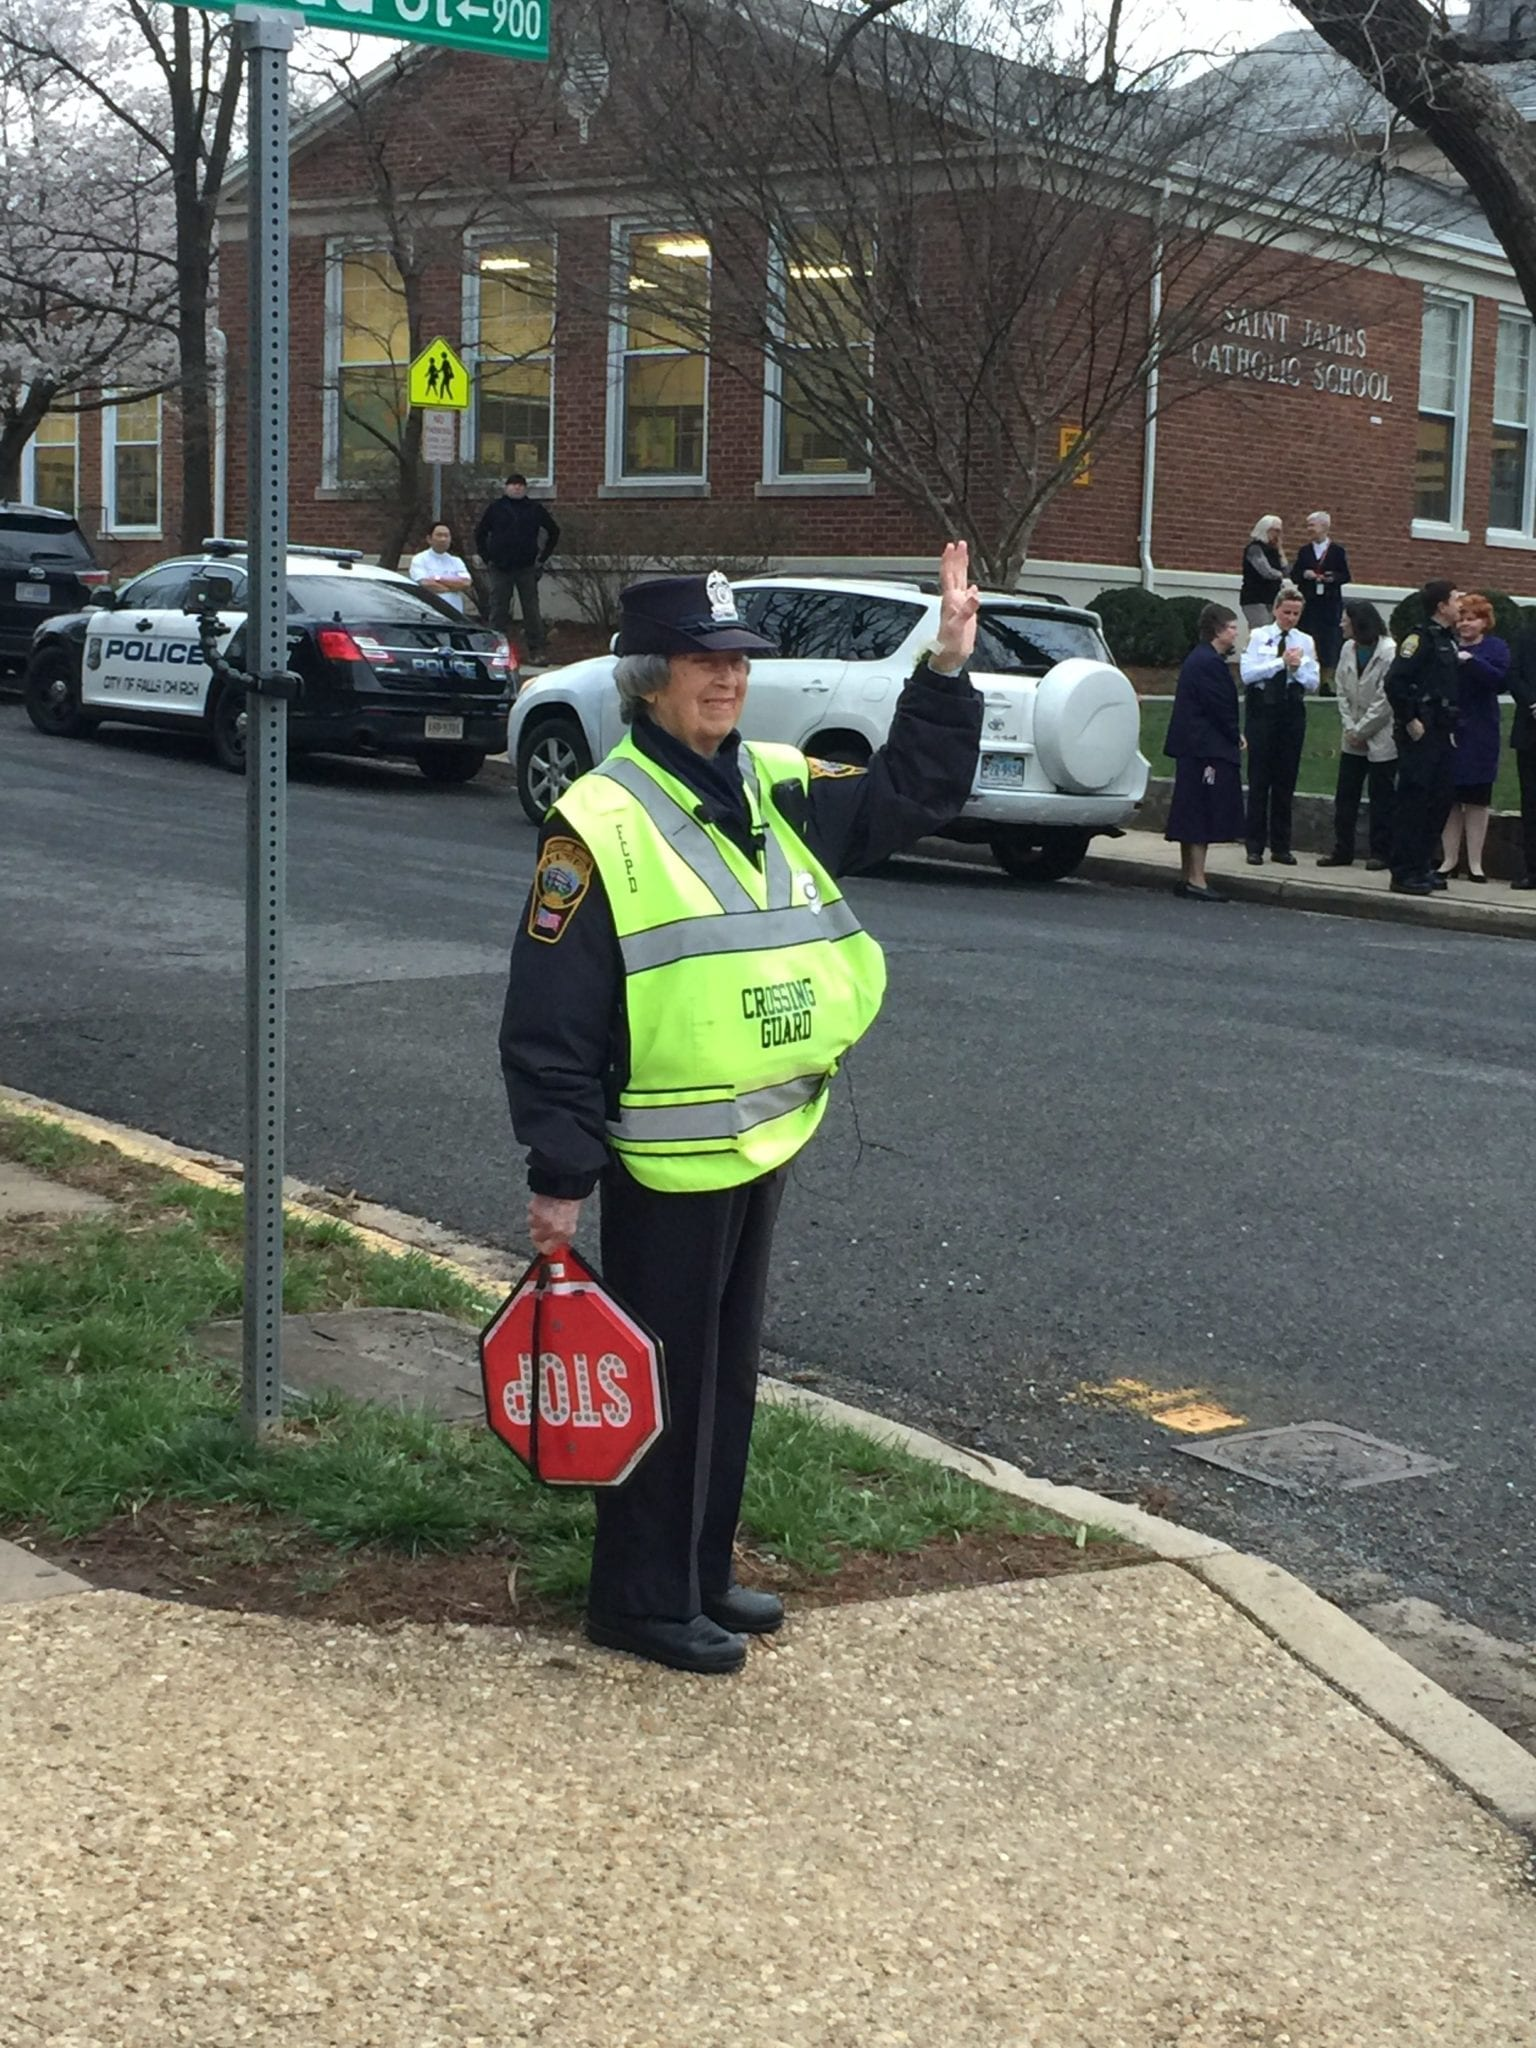 Janet Haines in her usual spot at the corner of Broad and Spring Streets in Falls Church. (Photo: News-Press)